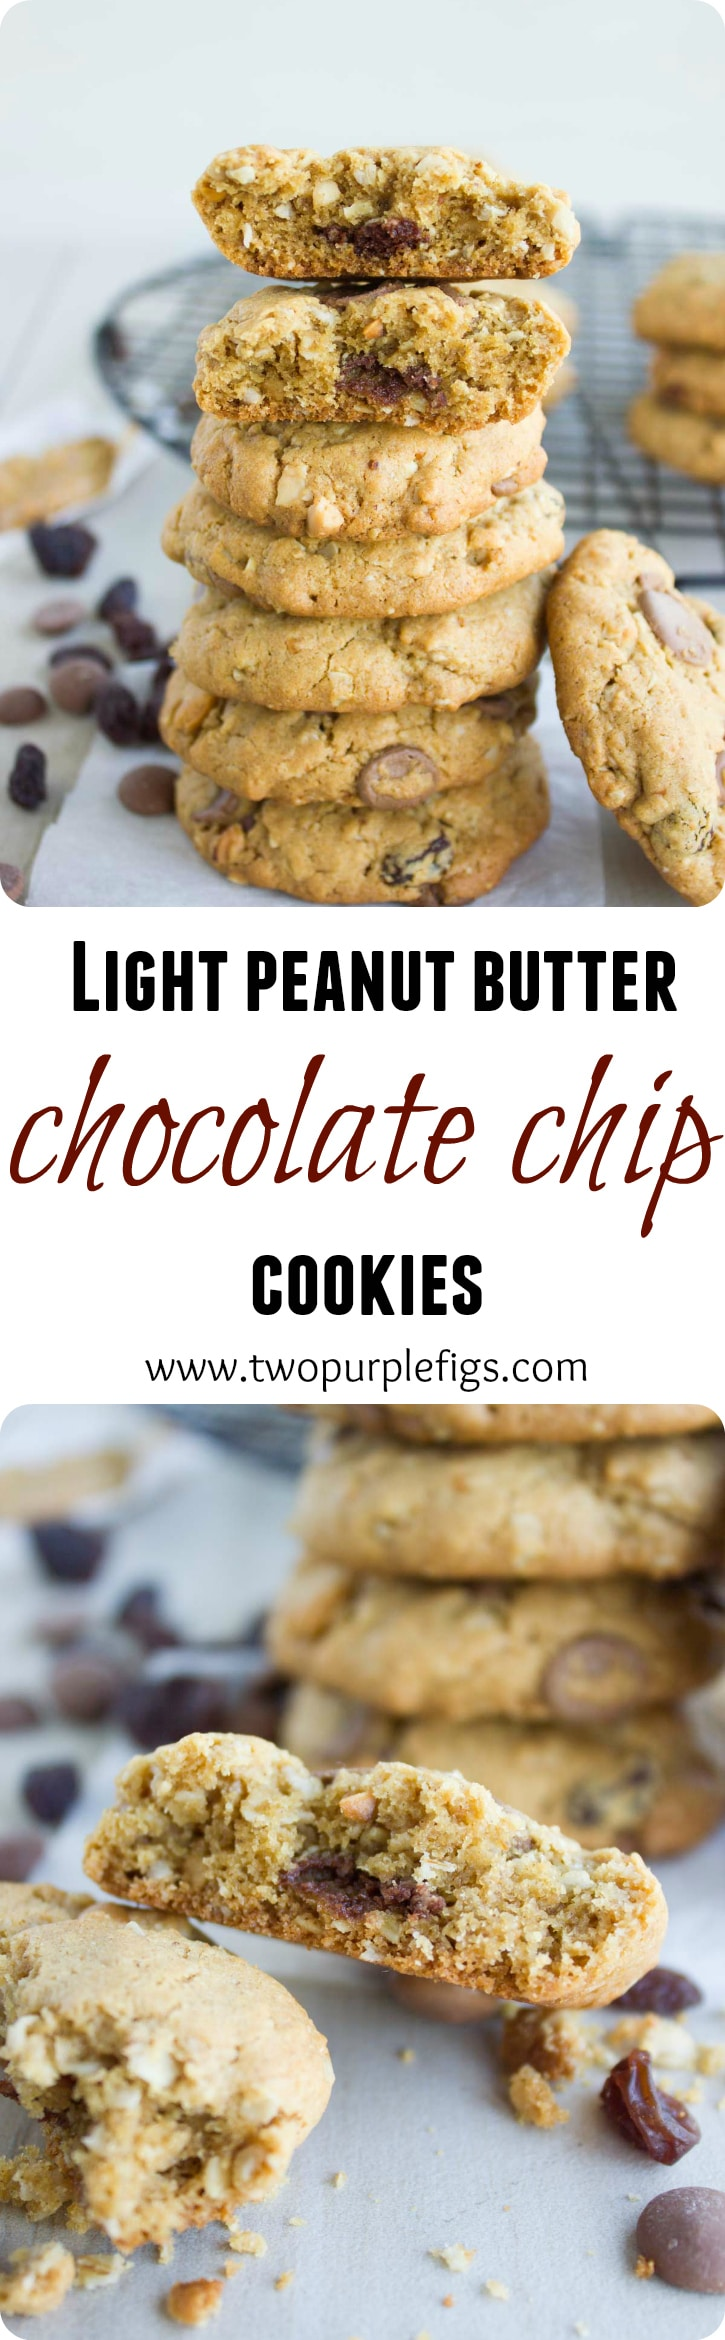 Peanut Butter Chocolate Chip Cookies - these healthy cookies are gluten-free, low in sugar and have no oil, butter or flour added! These soft and chewy cookies with melty pockets or chocolate are a heavenly treat and the perfect lunchbox snack for kids! #glutenfree, #cookies, #oats, #raisins, #chocolate, #easy, #baking, #healthy,